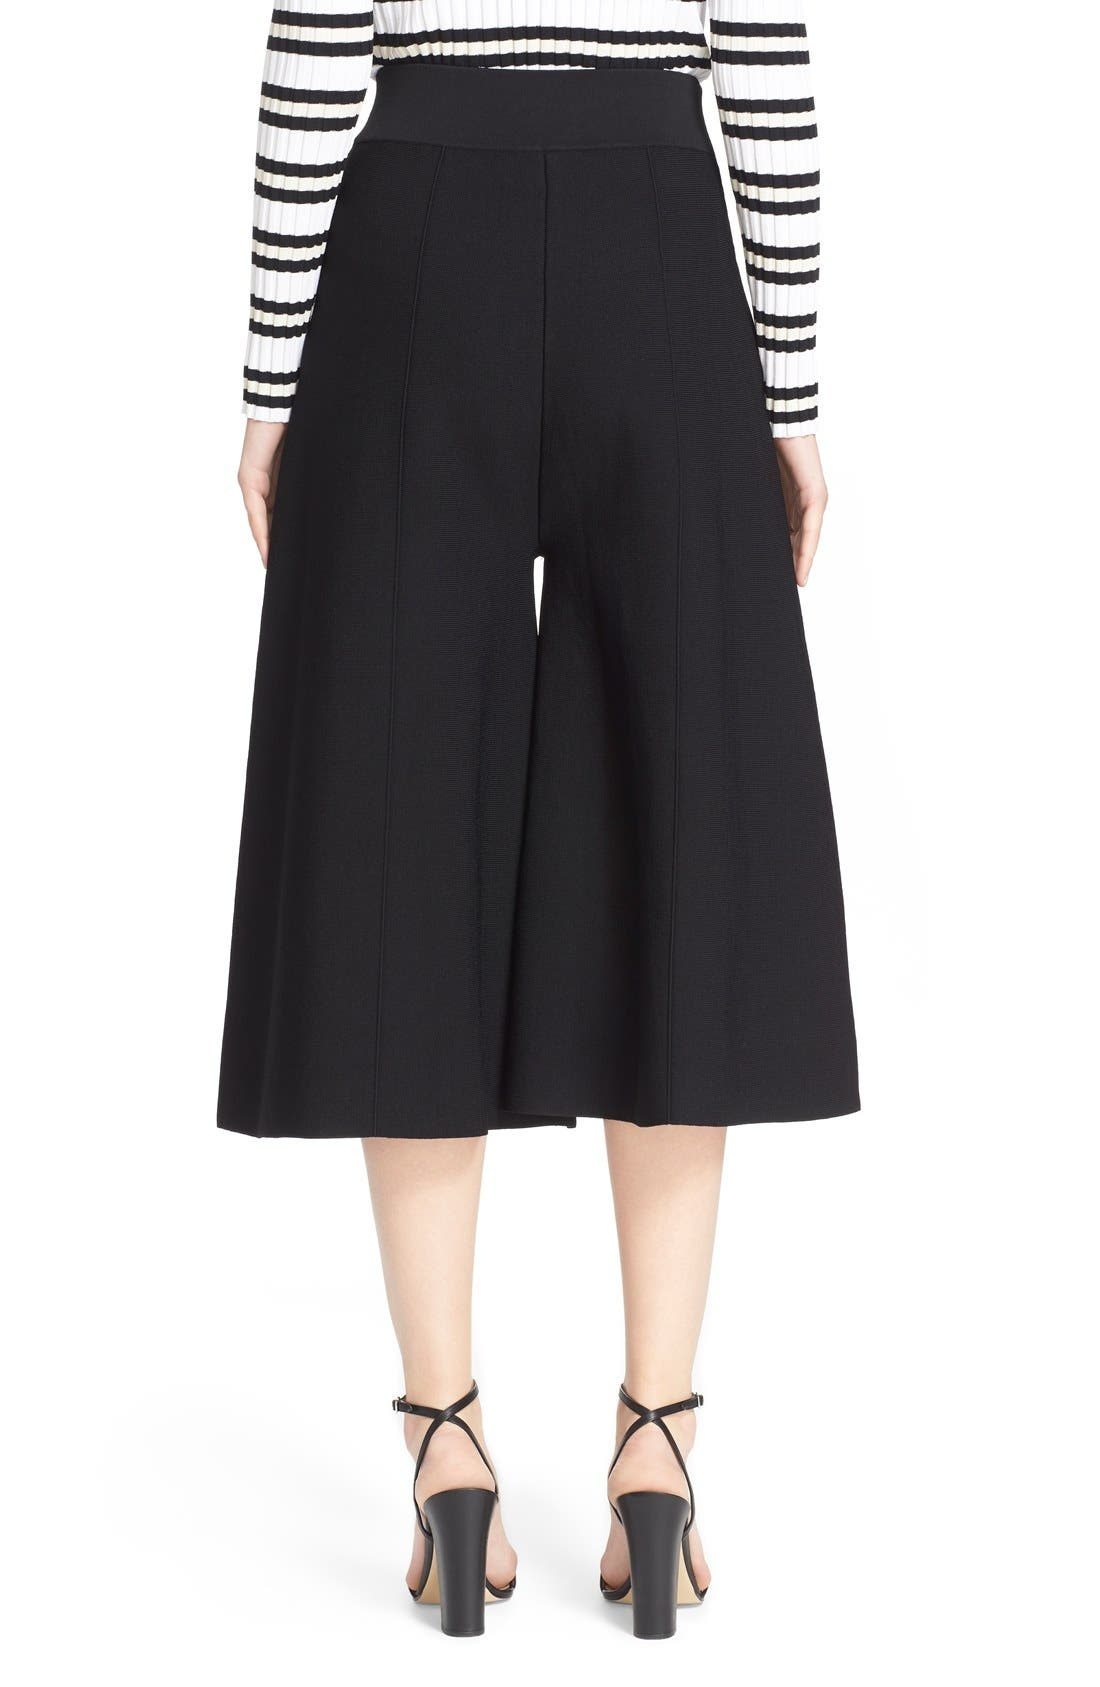 MILLY, Knit Culottes, Alternate thumbnail 5, color, 001